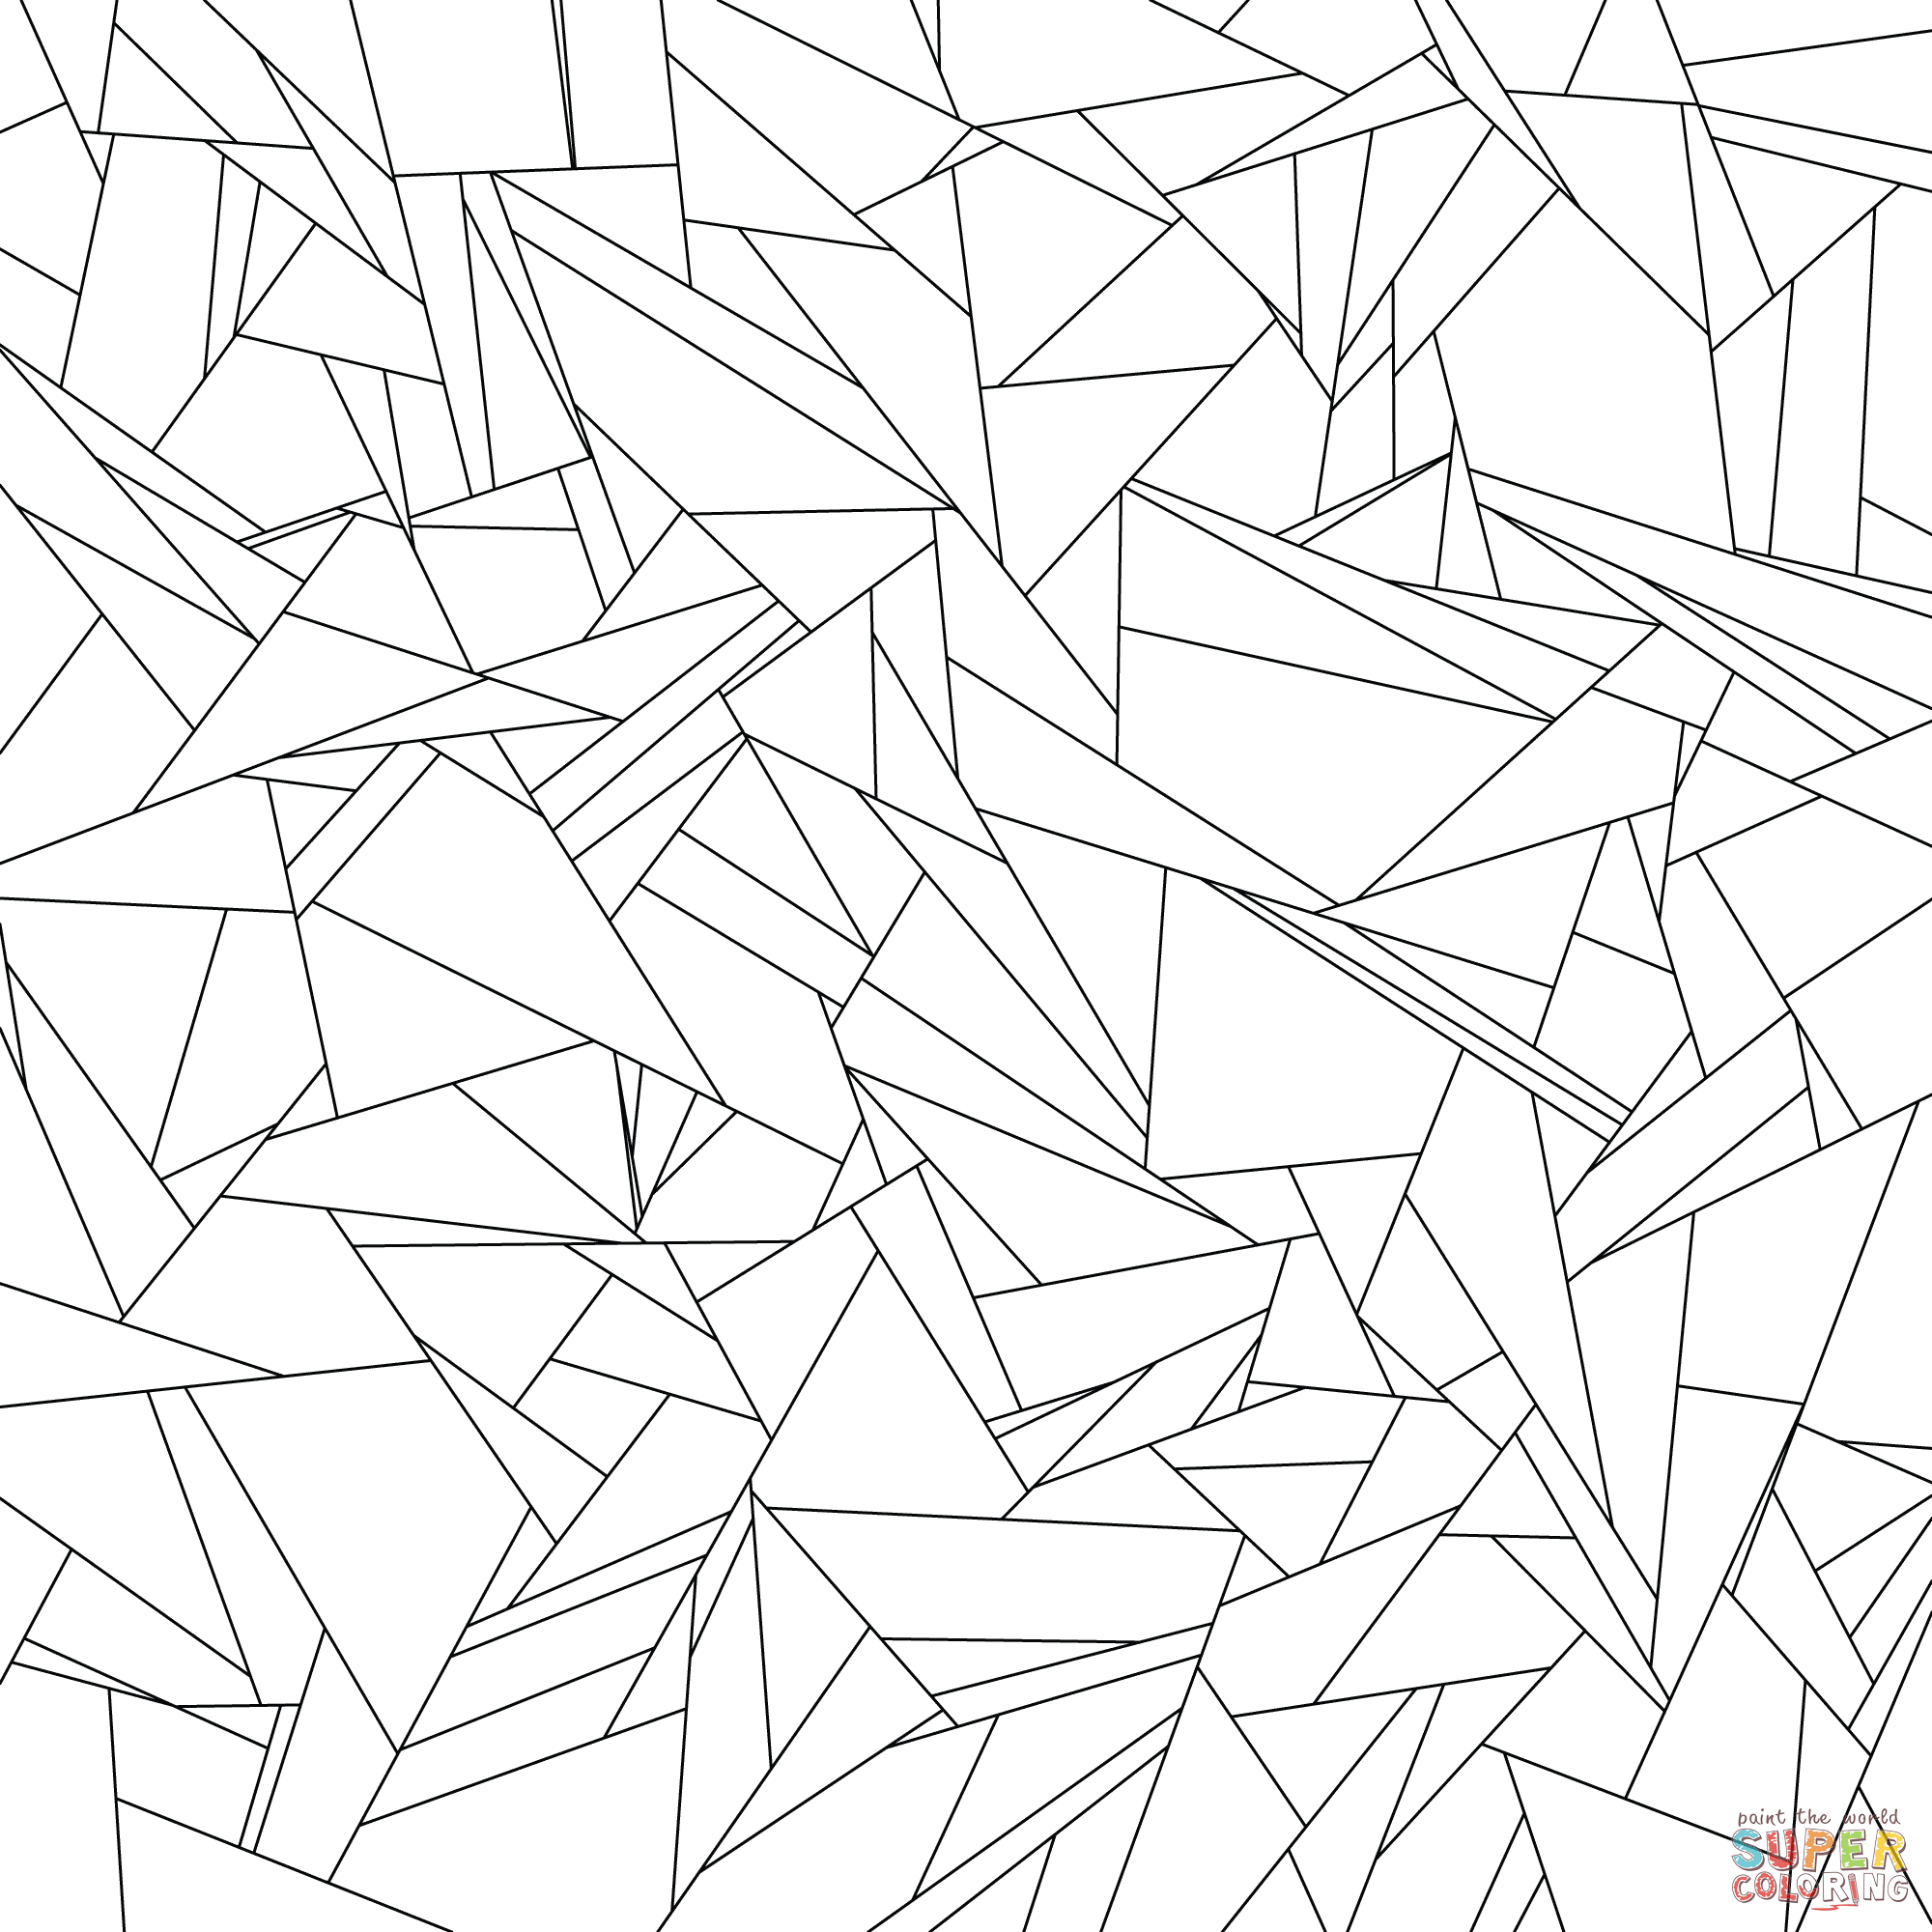 Gilbert Tessellation coloring page from Tessellations